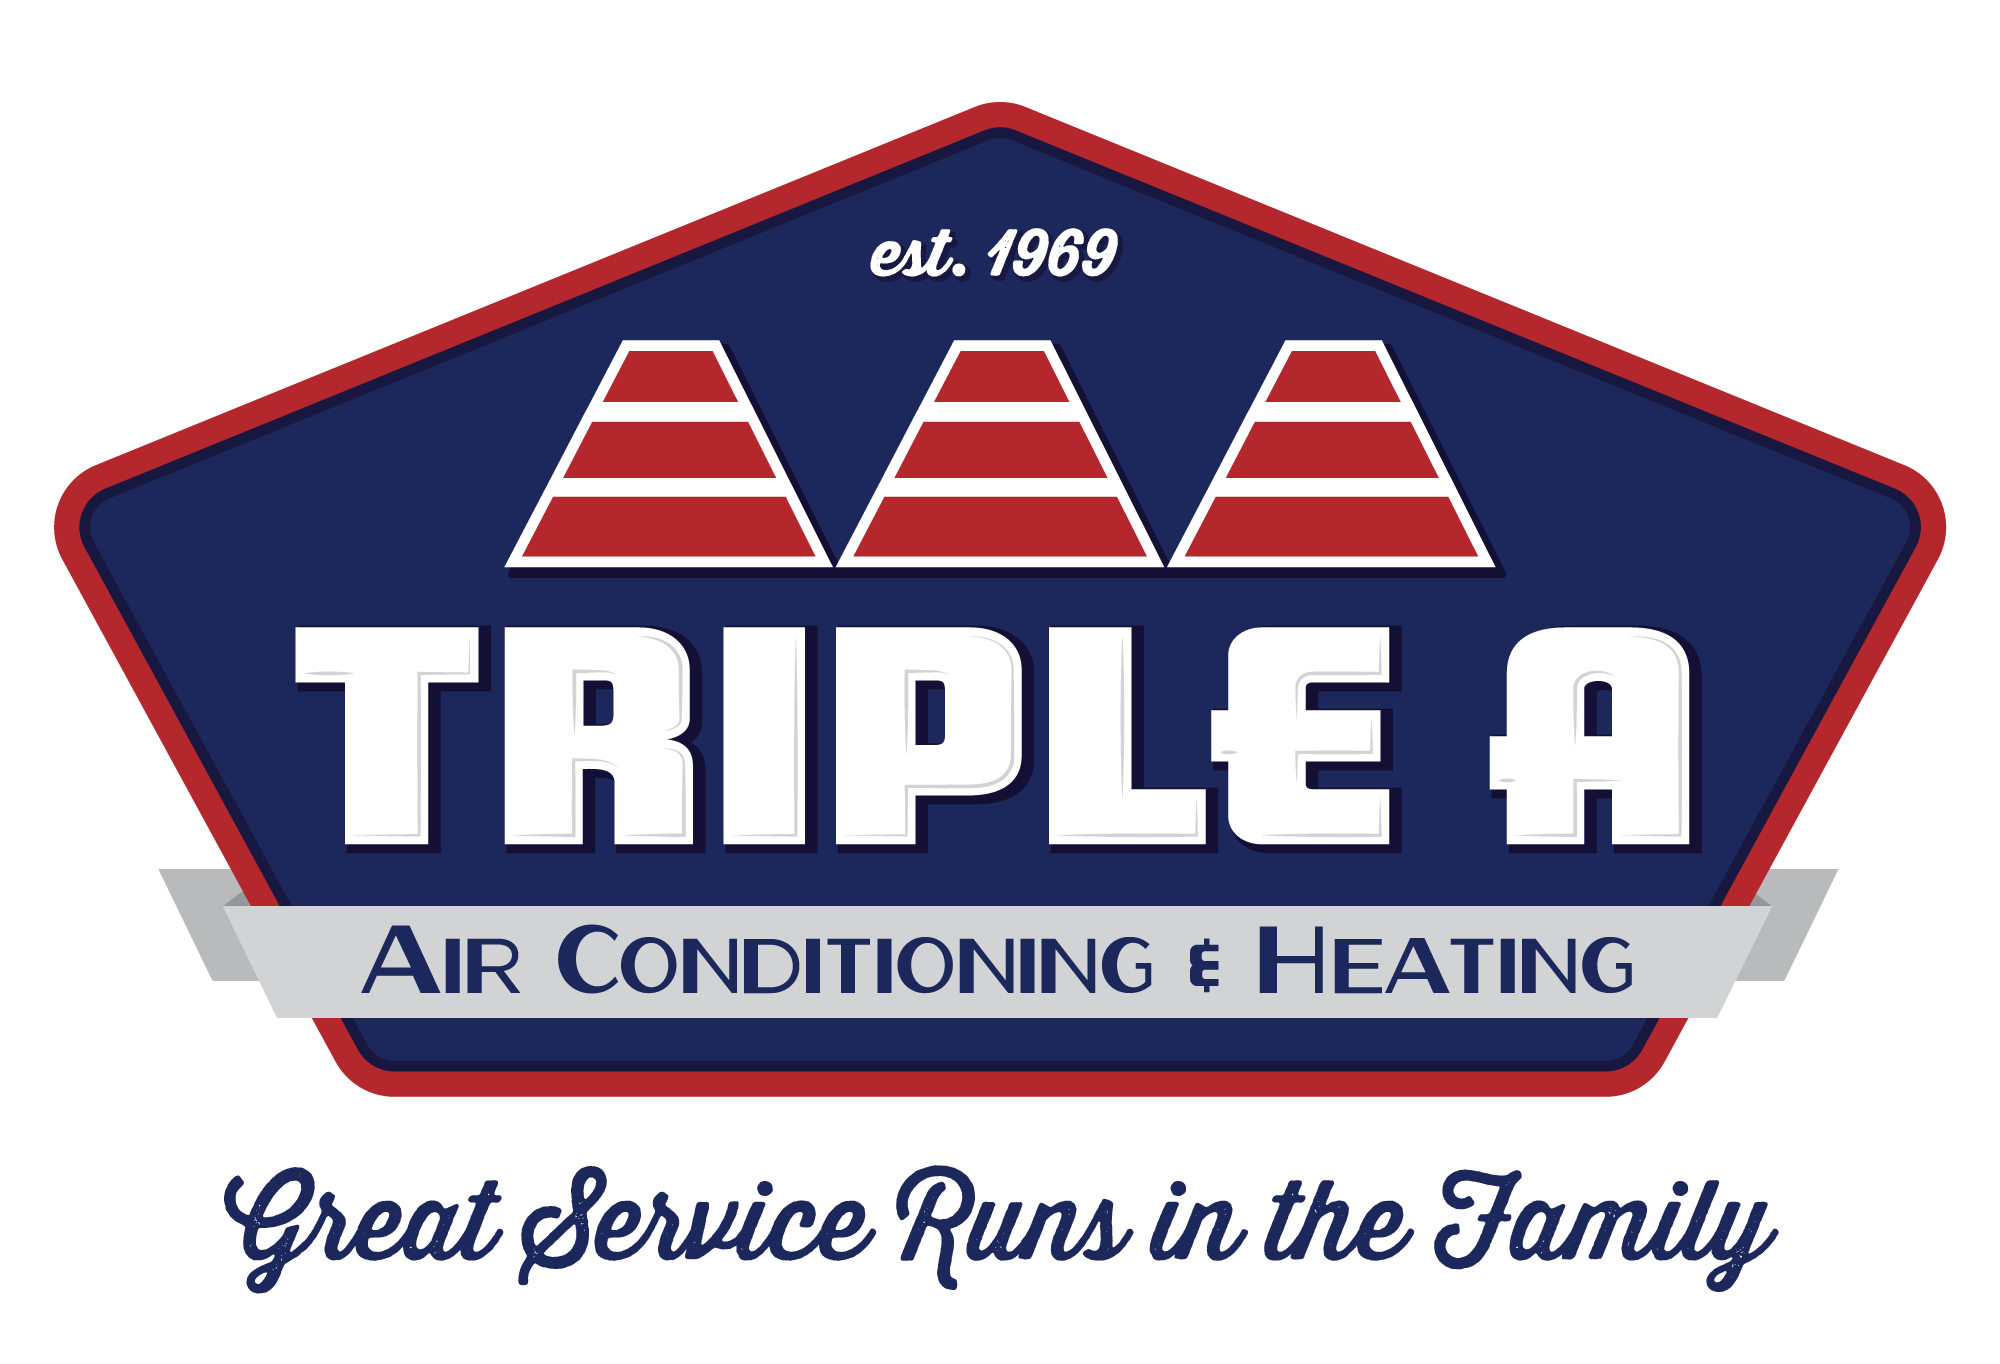 Triple Aaa Number >> Triple A Air Conditioning Inc Reviews Irving Tx 75061 1